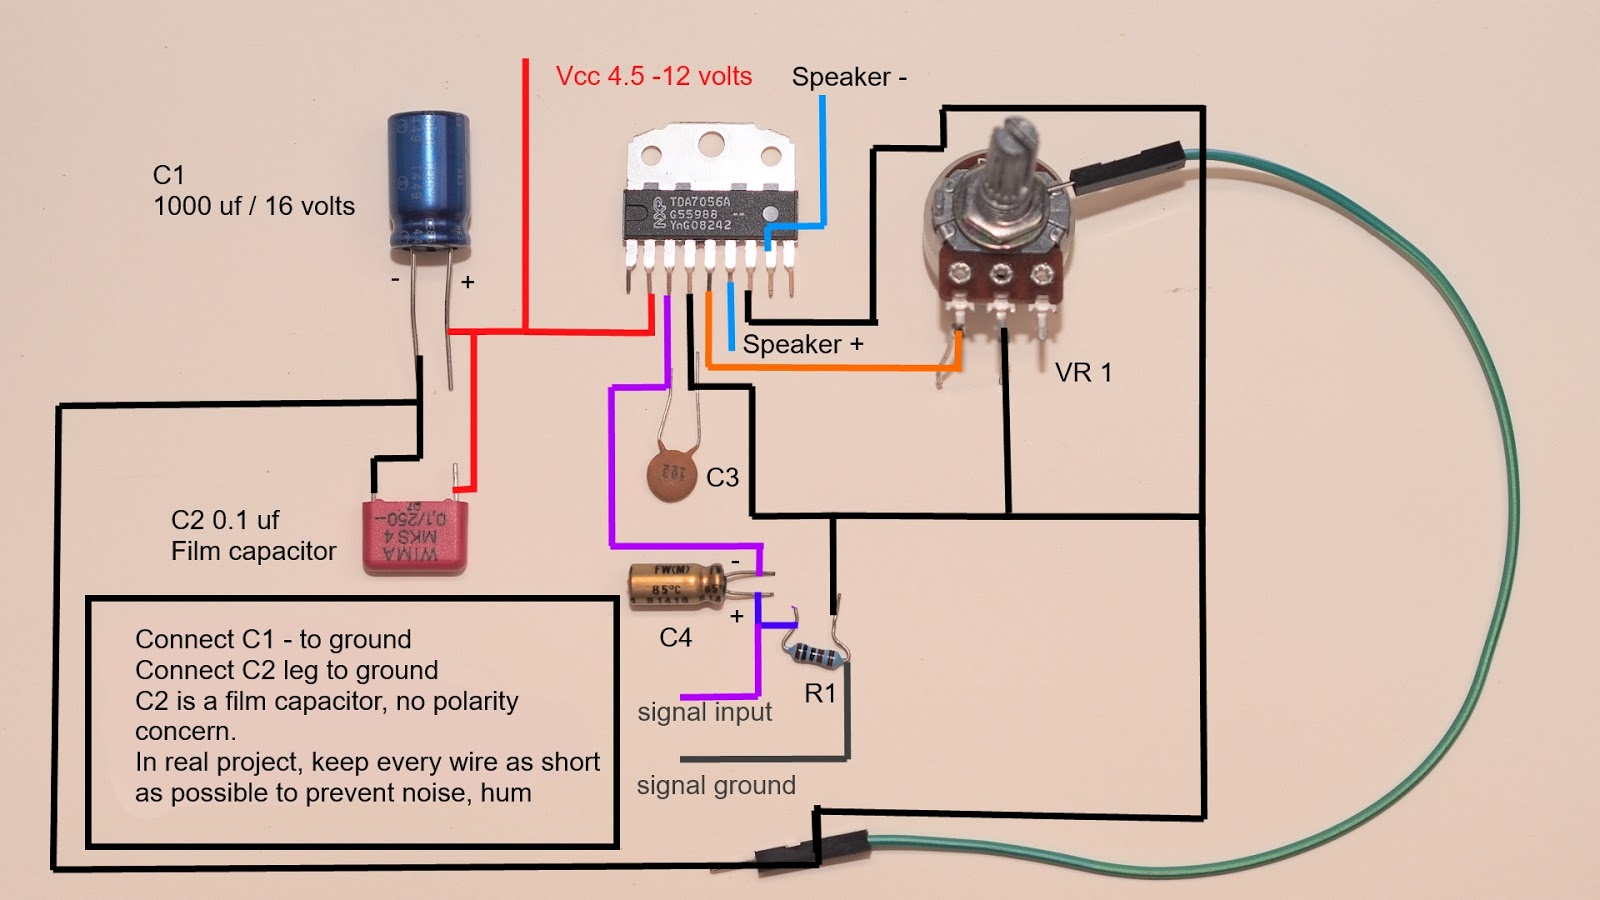 Pam 8403 Board Amp Wiring Diagram For Pa Speaker Diagrams Tda 7056 A Is An Audio Power Amplifier Ic That Has 5 Watts Output With 8 Ohms And 3 16 Speakerthe Simple To